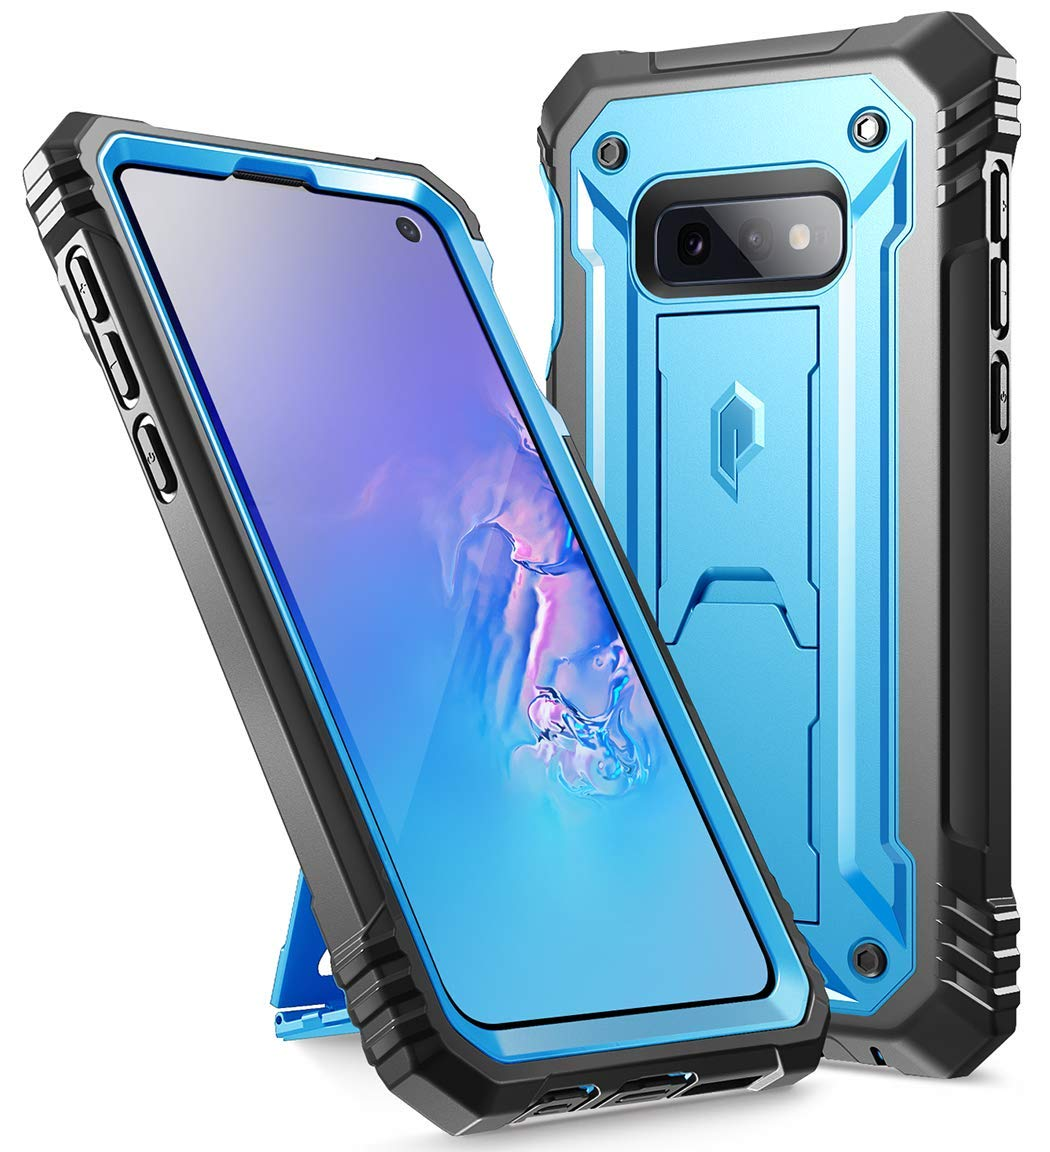 Revolution Series with Built-in-Screen Protector Black Poetic Heavy Duty Military Grade Full Body Cover for Samsung Galaxy S10e 5.8 Inch 2019 Galaxy S10e Rugged Case with Kickstand